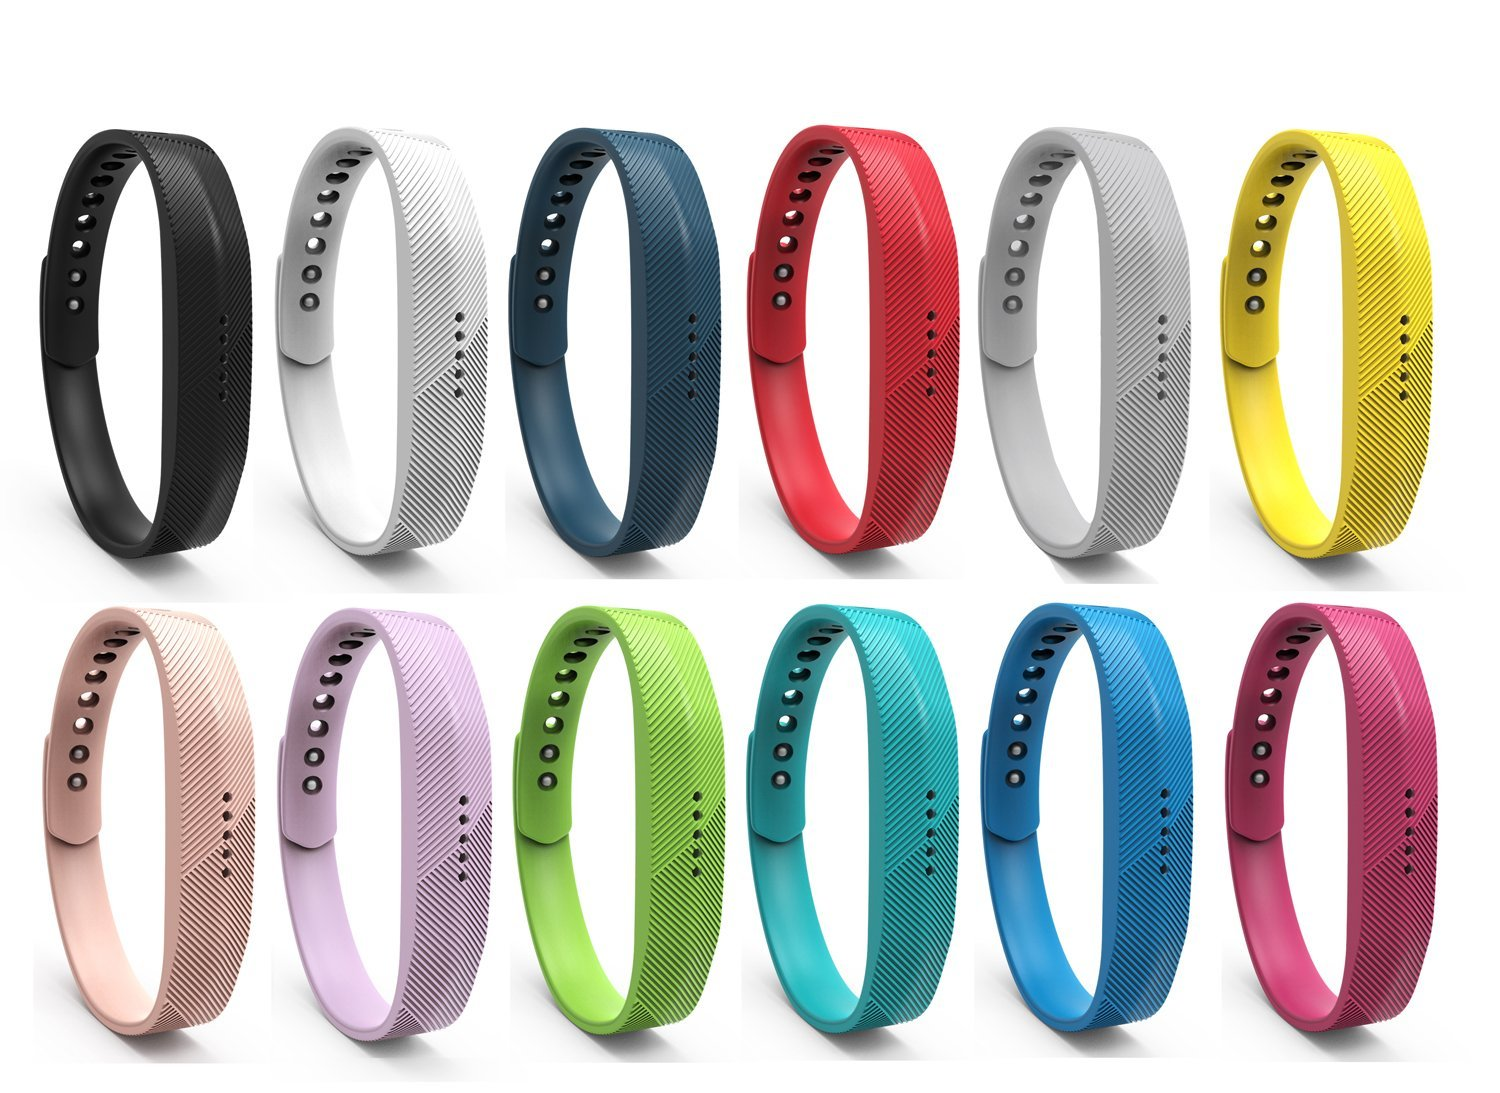 12 Colors Fitbit Flex 2 Band, BeneStellar Bracelet Strap Replacement Band for Fitbit Flex 2